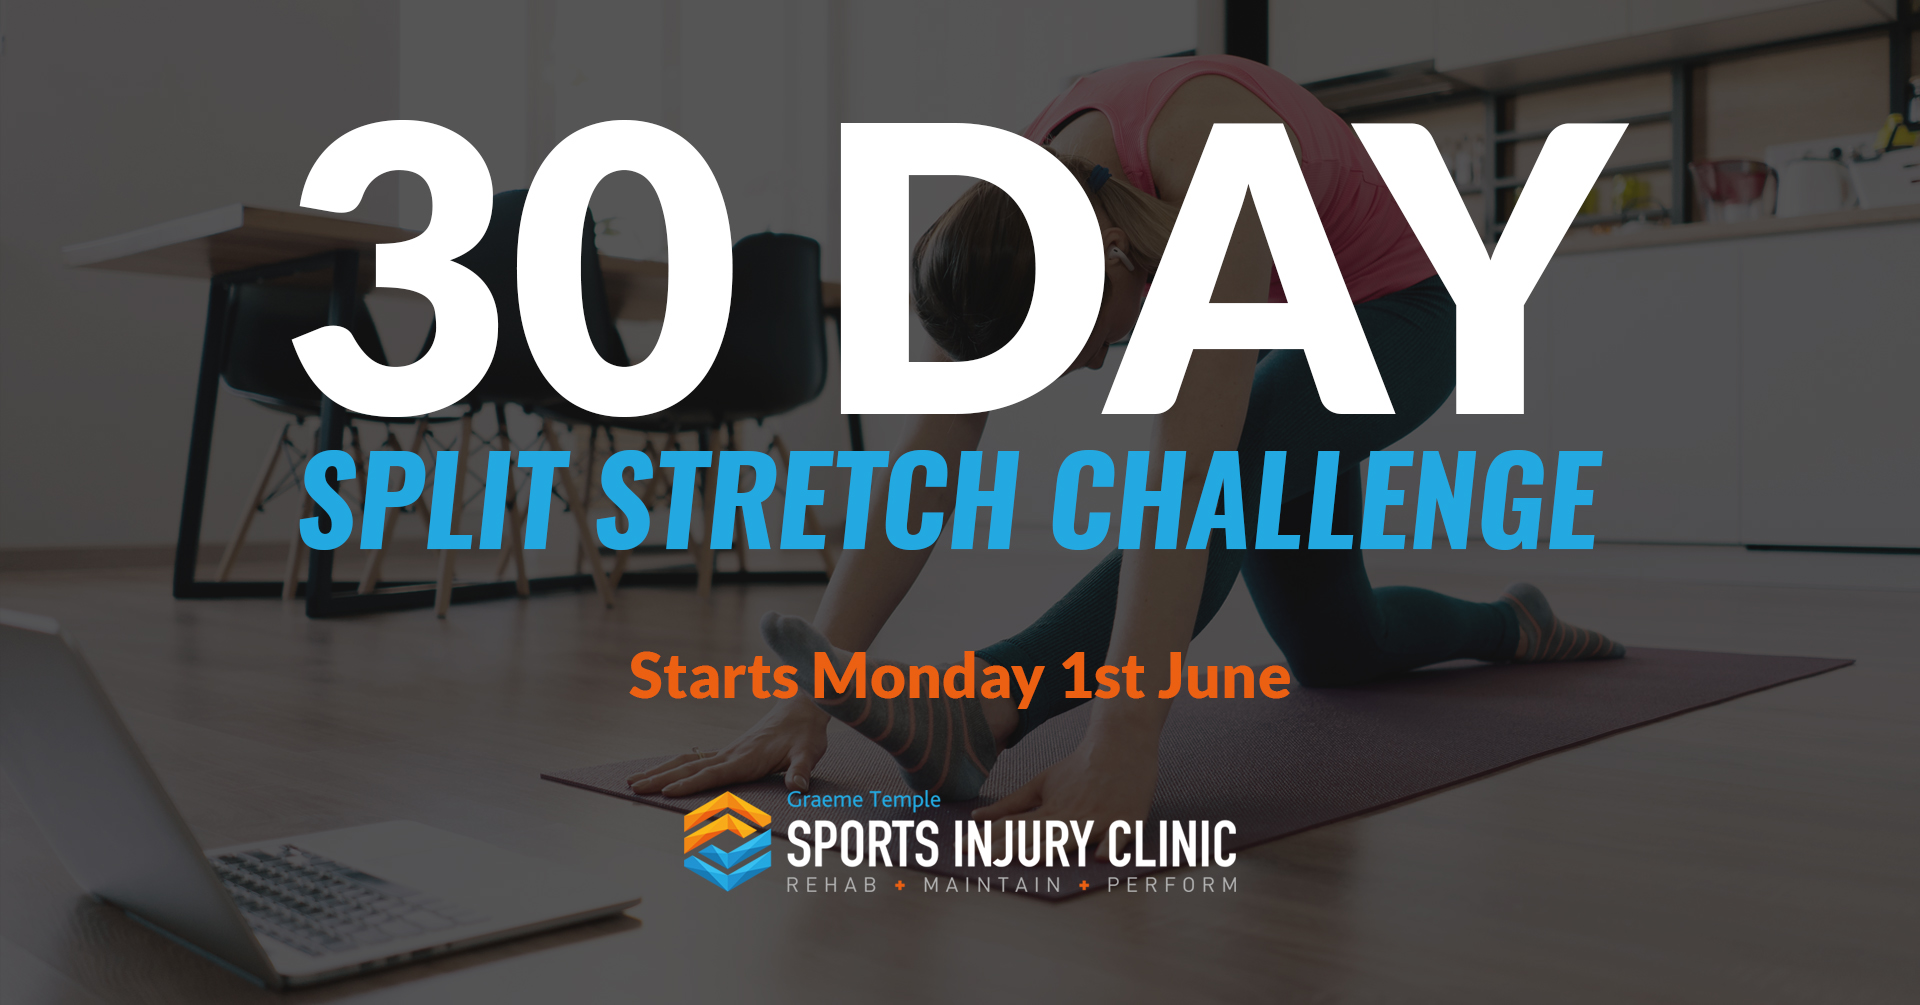 30 Day Splits Stretch Challenge